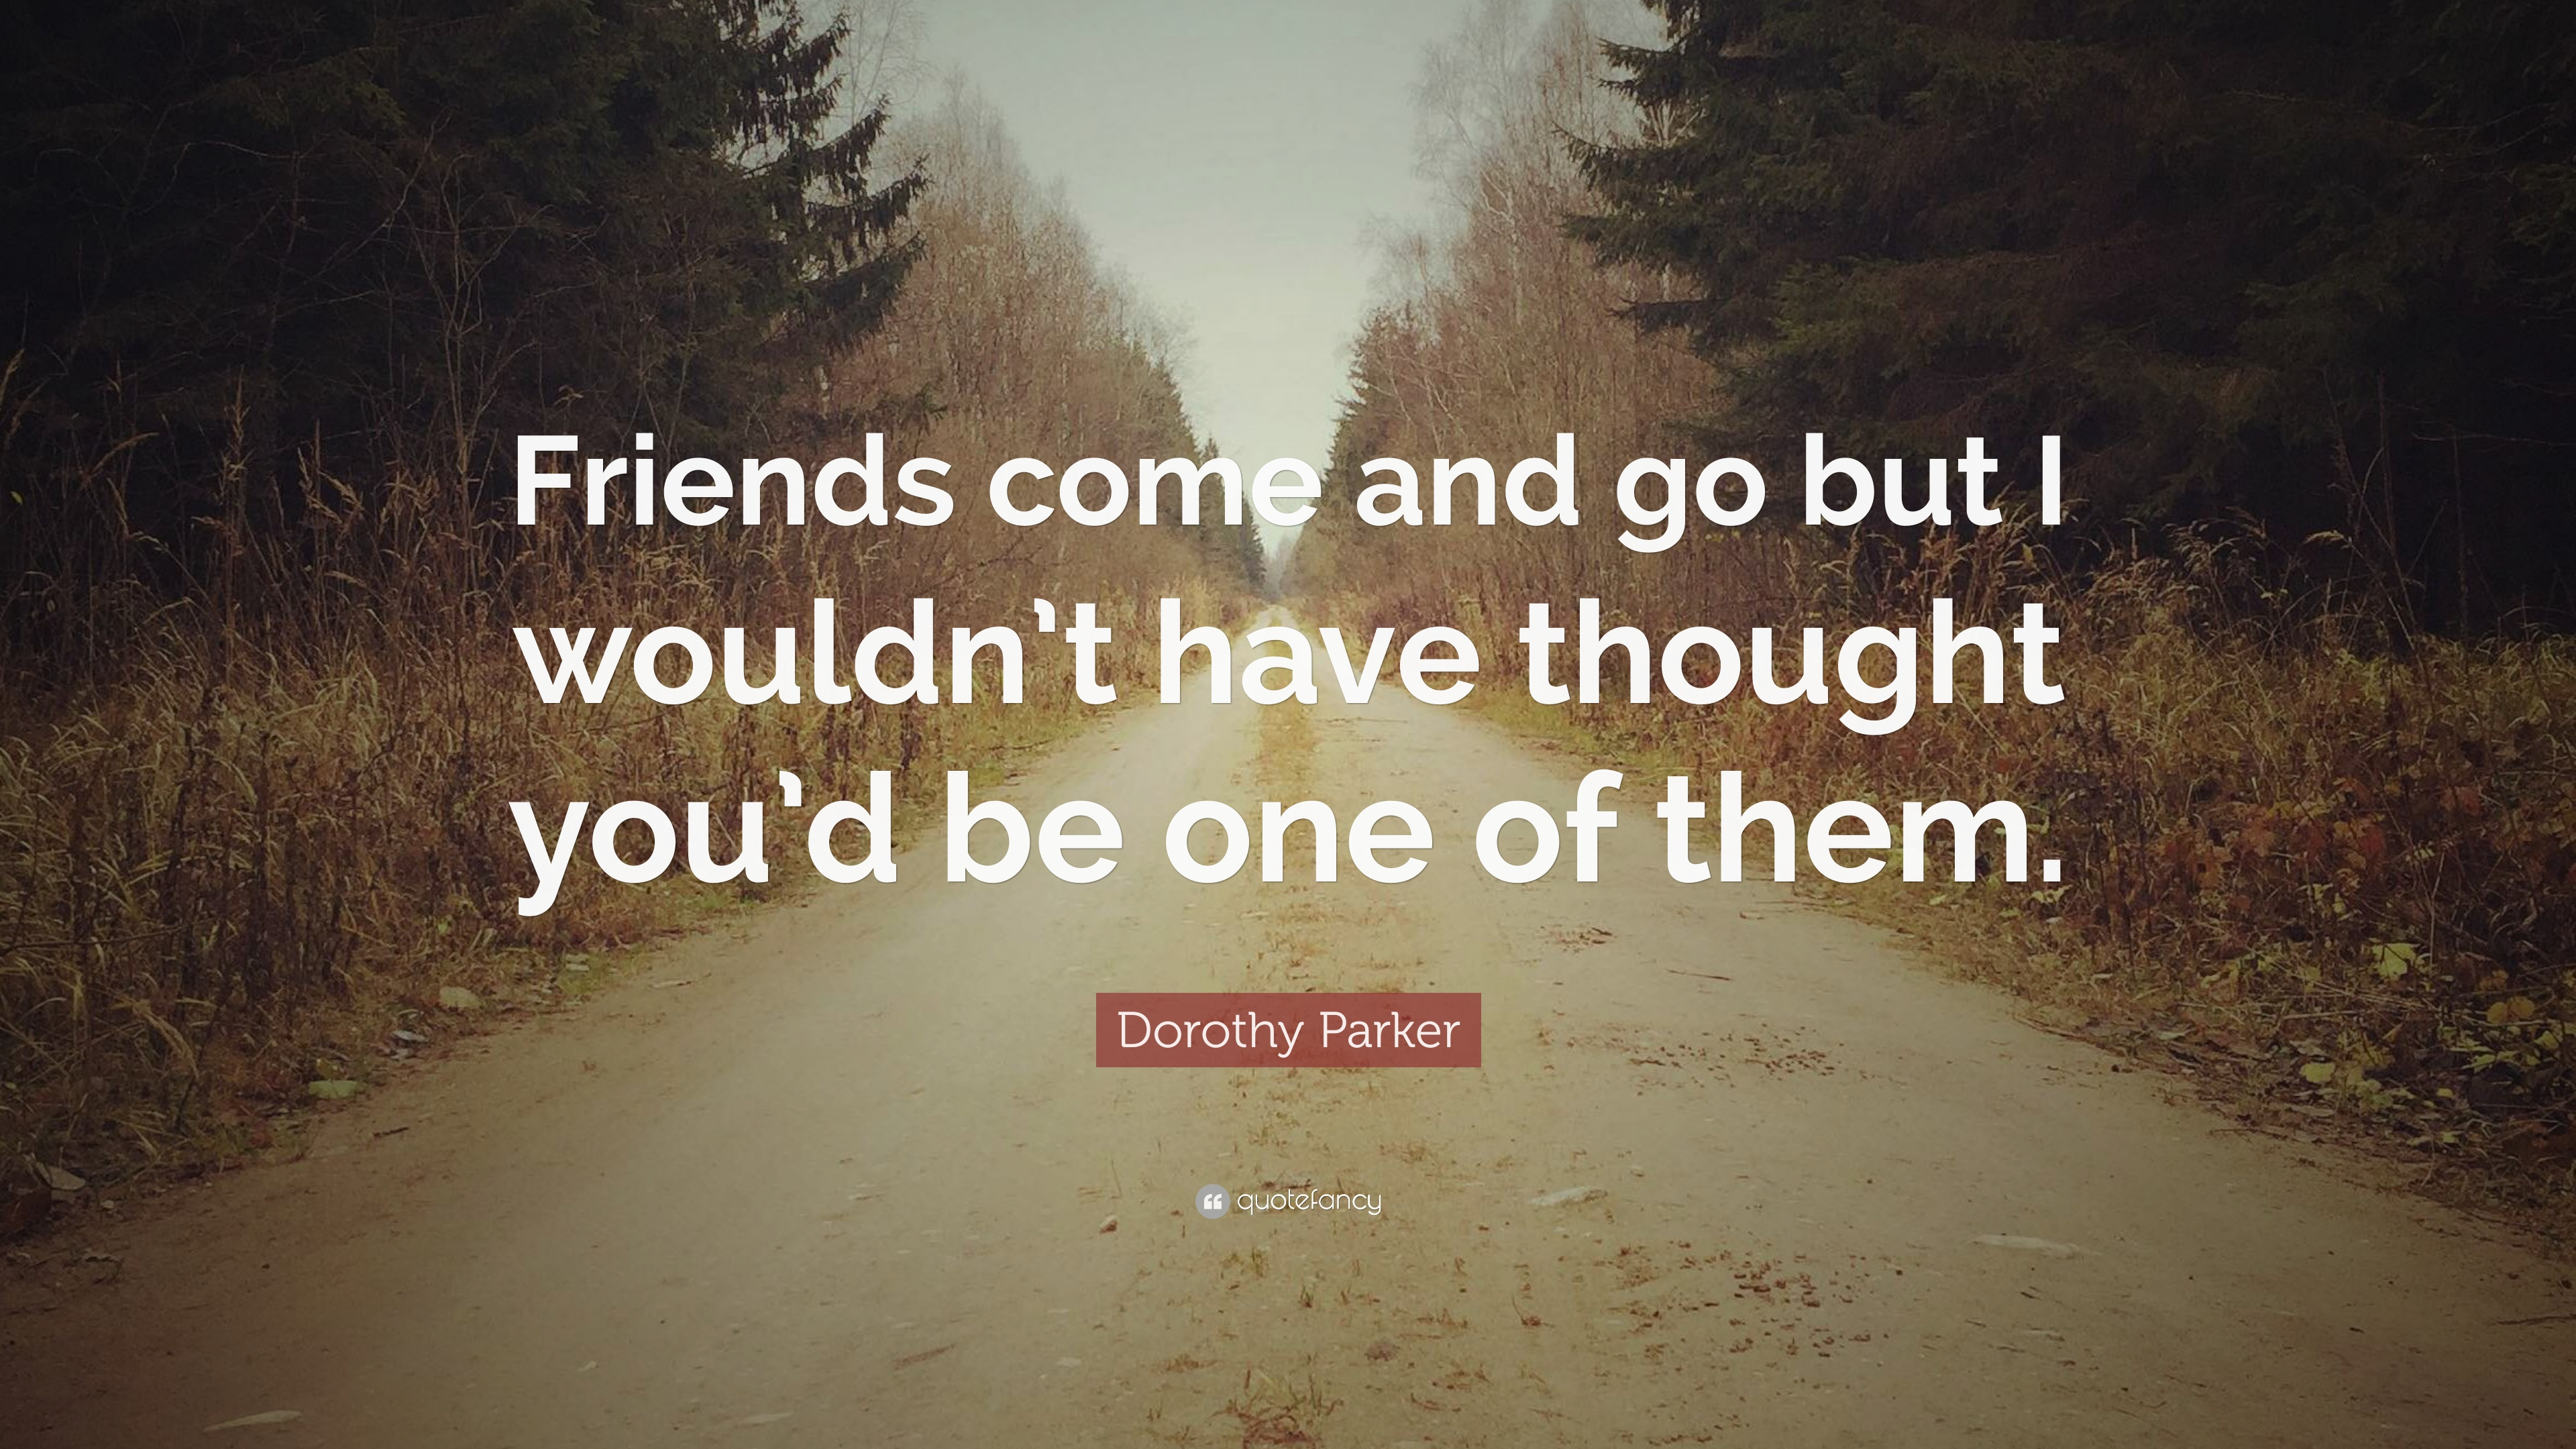 Dorothy Parker Quote Friends Come And Go But I Wouldnt Have